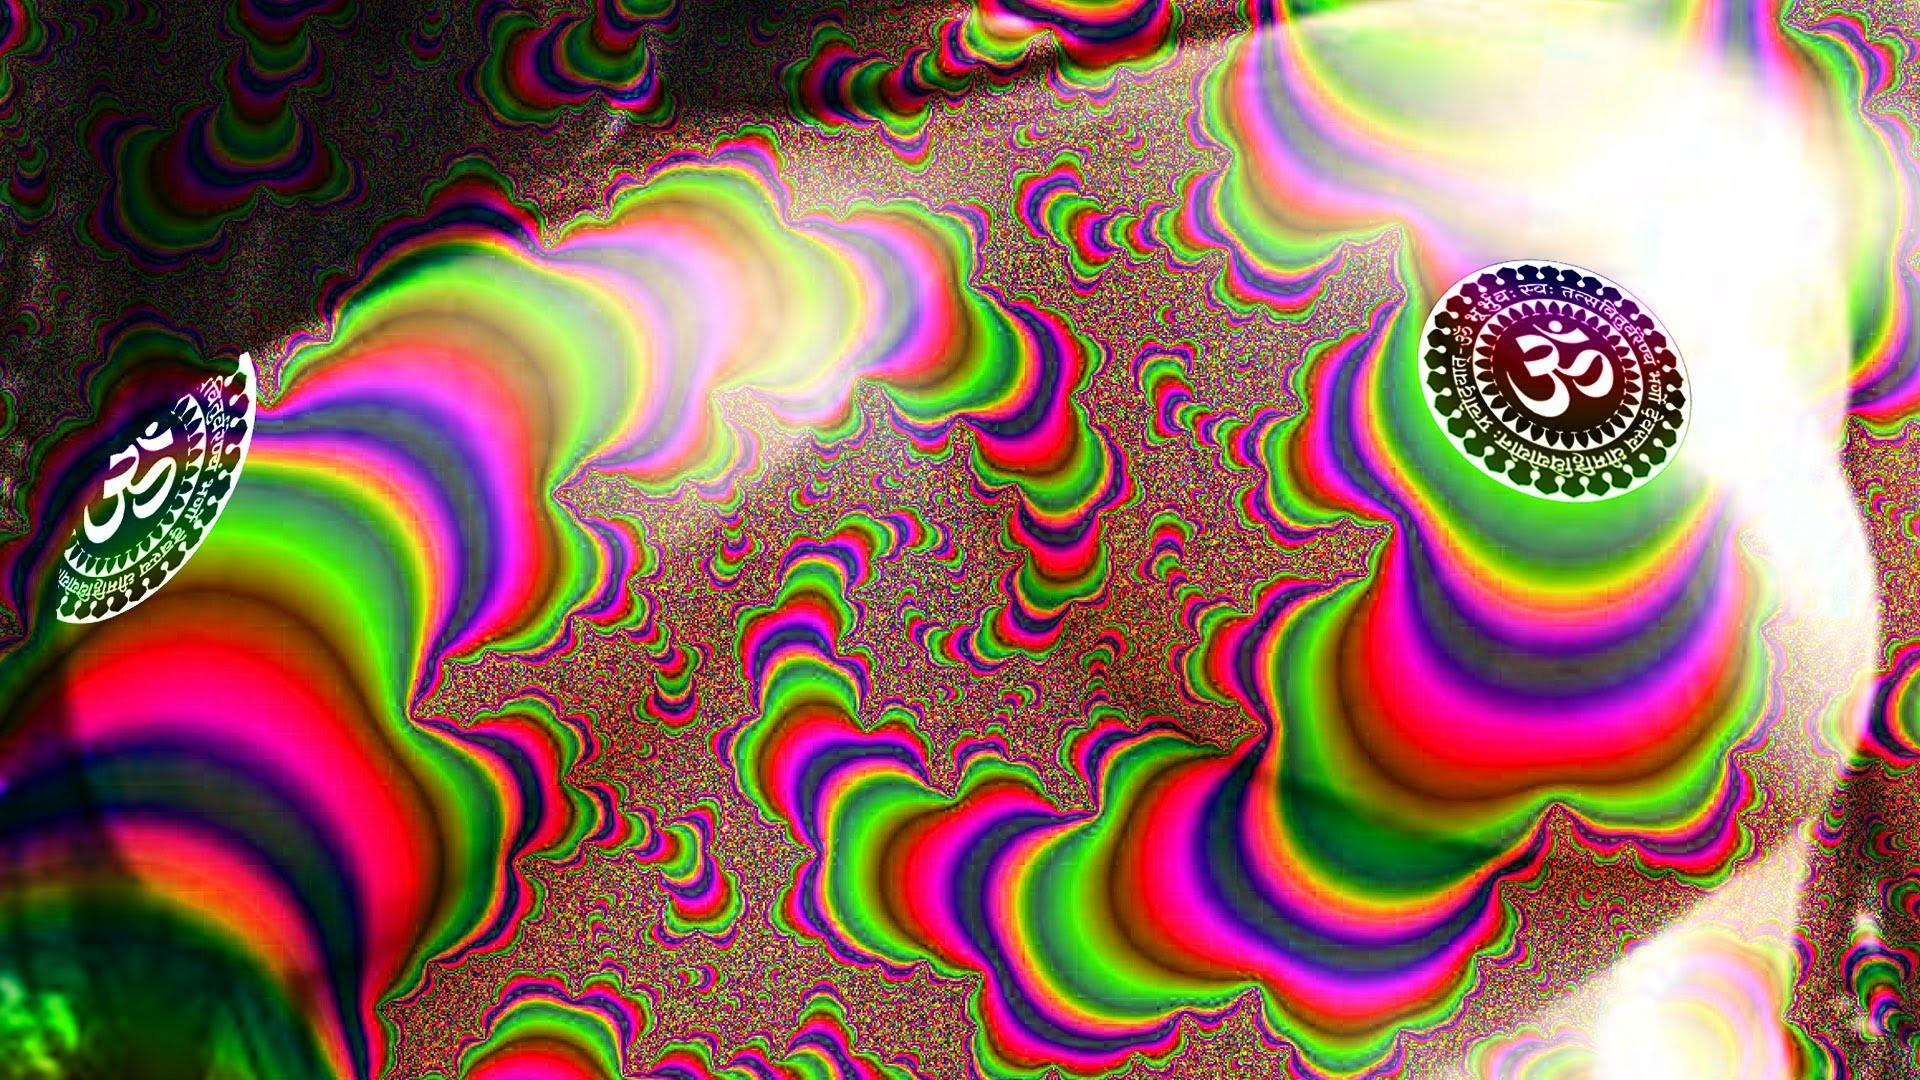 Trippy Hd Wallpapers Posted By Michelle Mercado